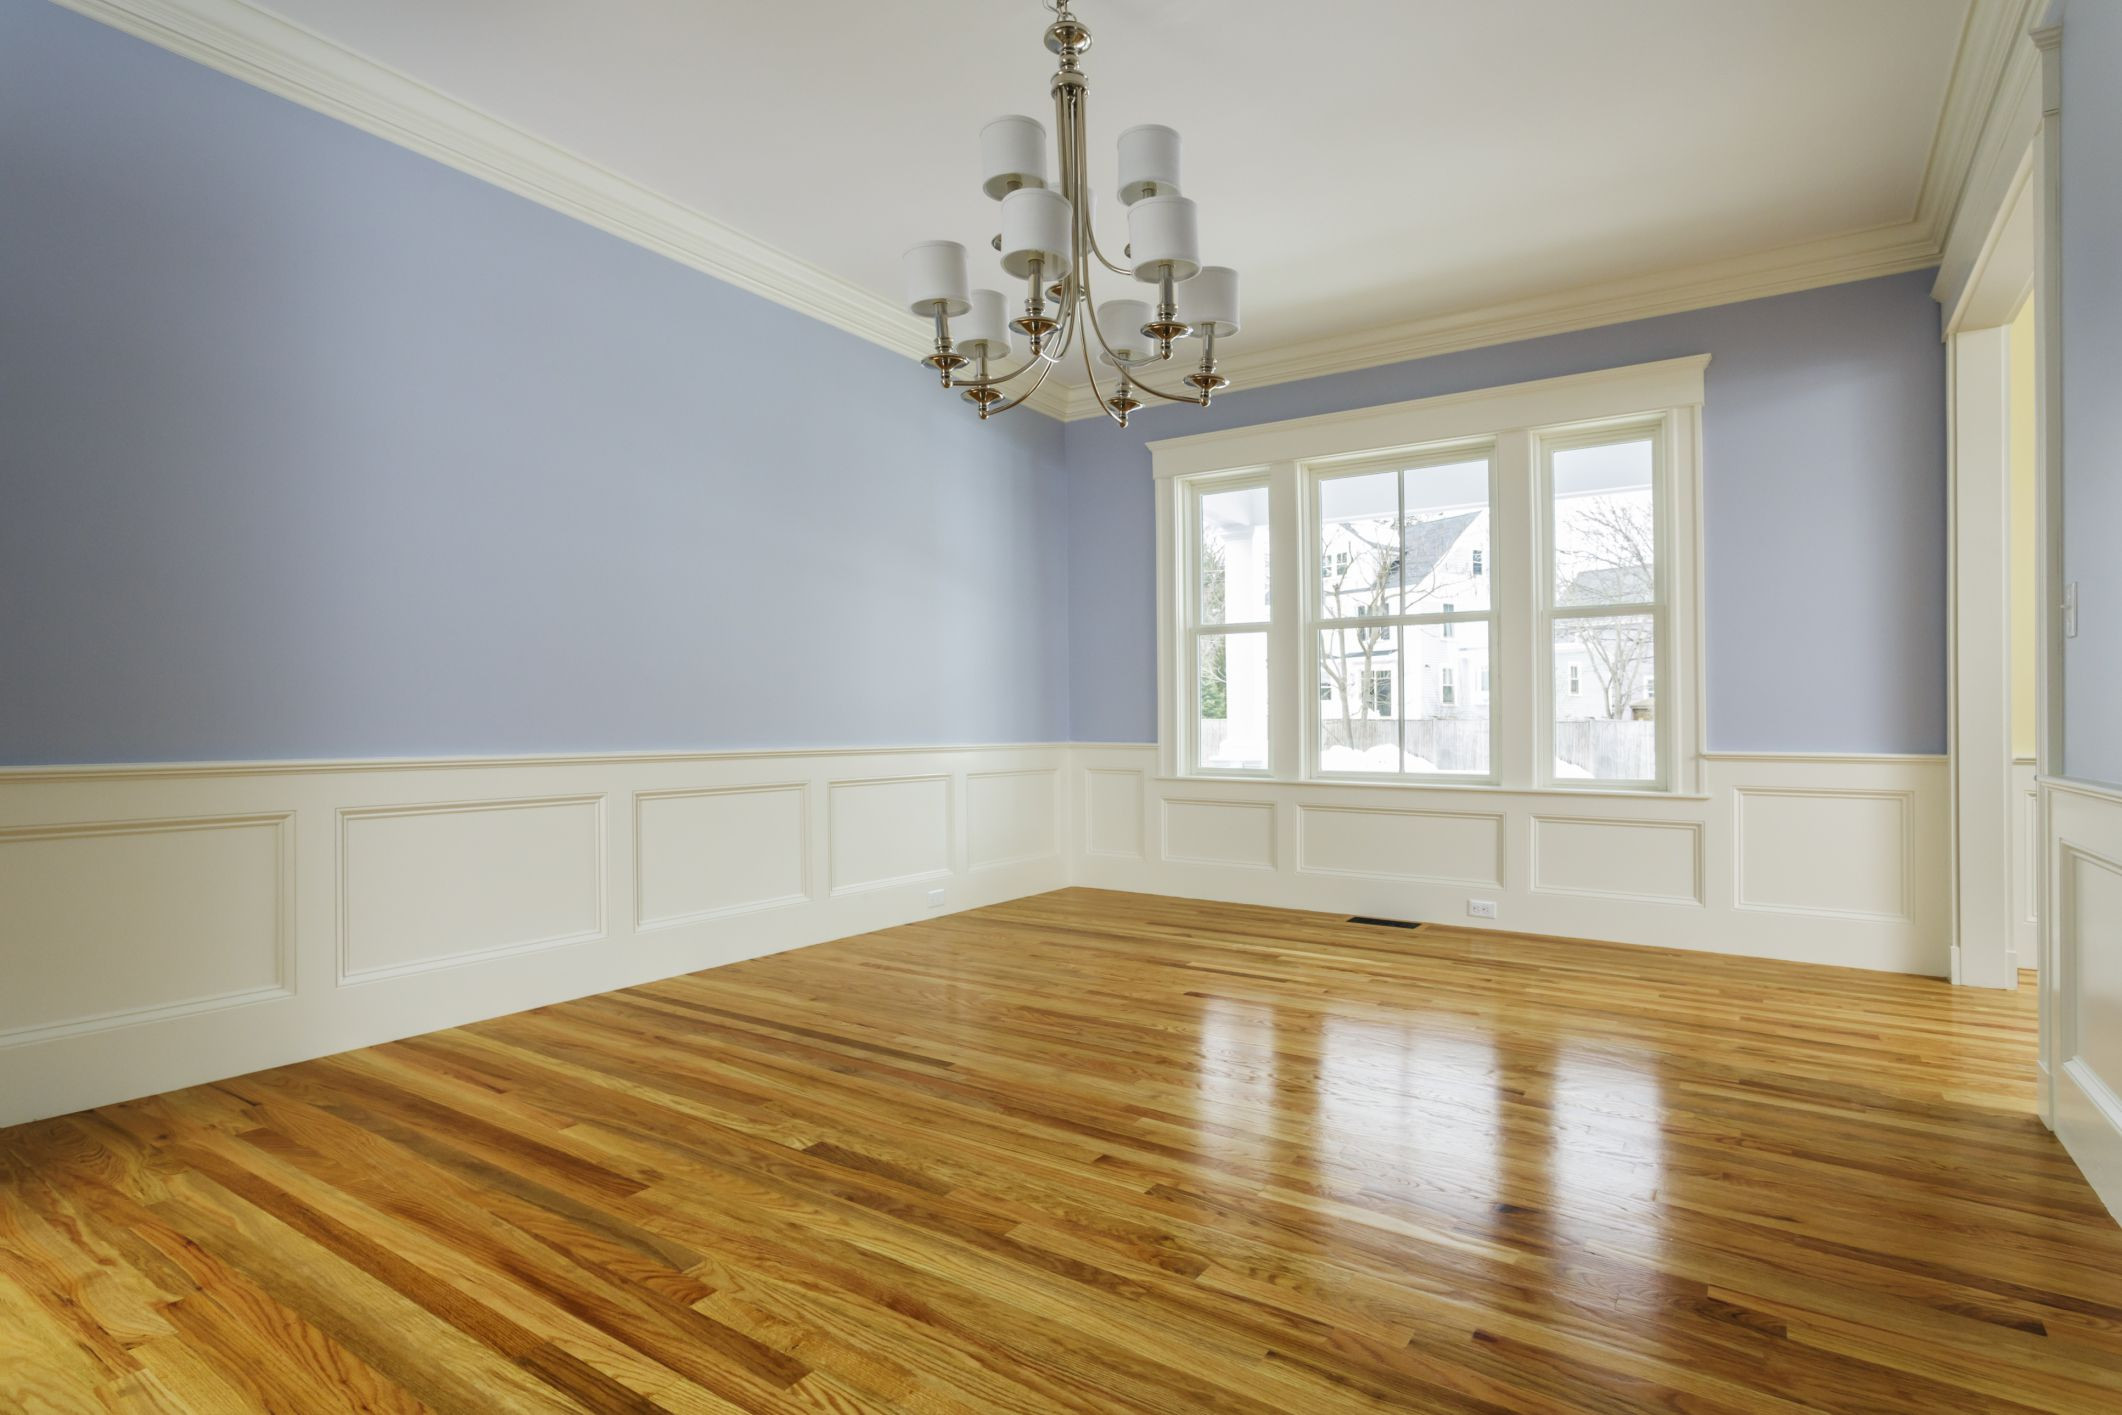 12 Perfect Hardwood Floor Refinishing In Tampa 2021 free download hardwood floor refinishing in tampa of how much to refinish hardwood floors here s the cost to refinish inside how much to refinish hardwood floors here s the cost to refinish hardwood floor